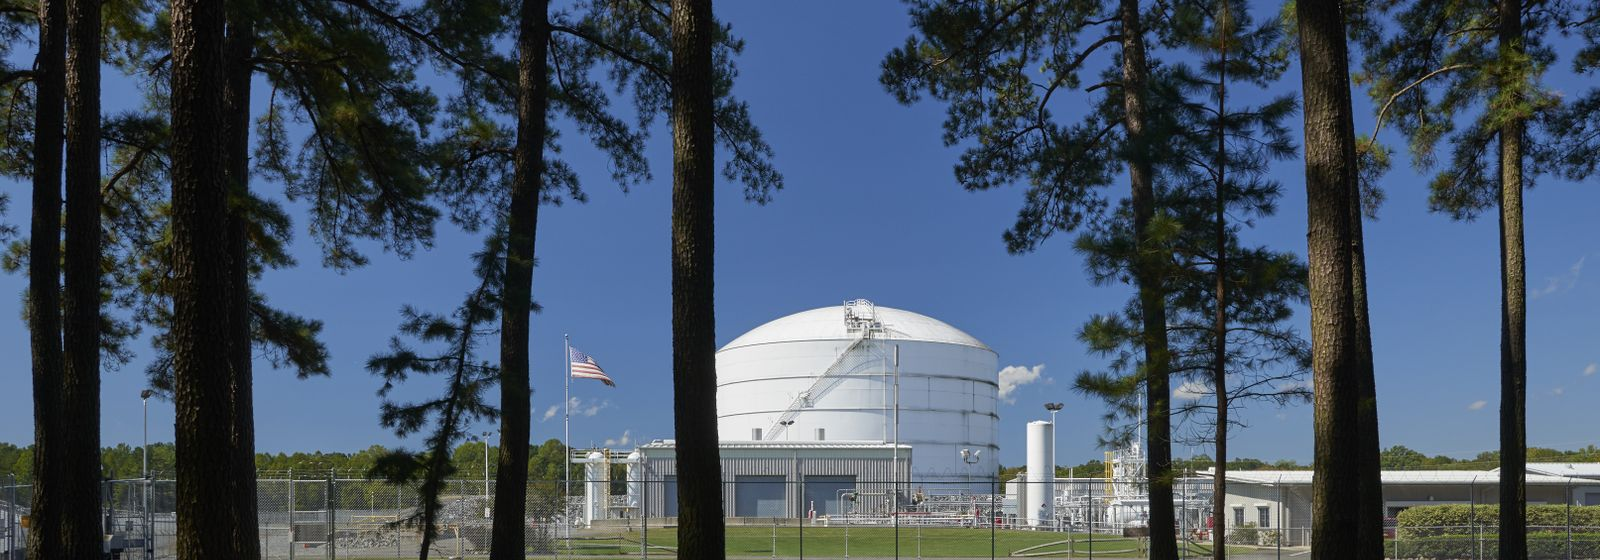 Liquefied Natural gas plant in North Carolina stays prepared for cold winter days